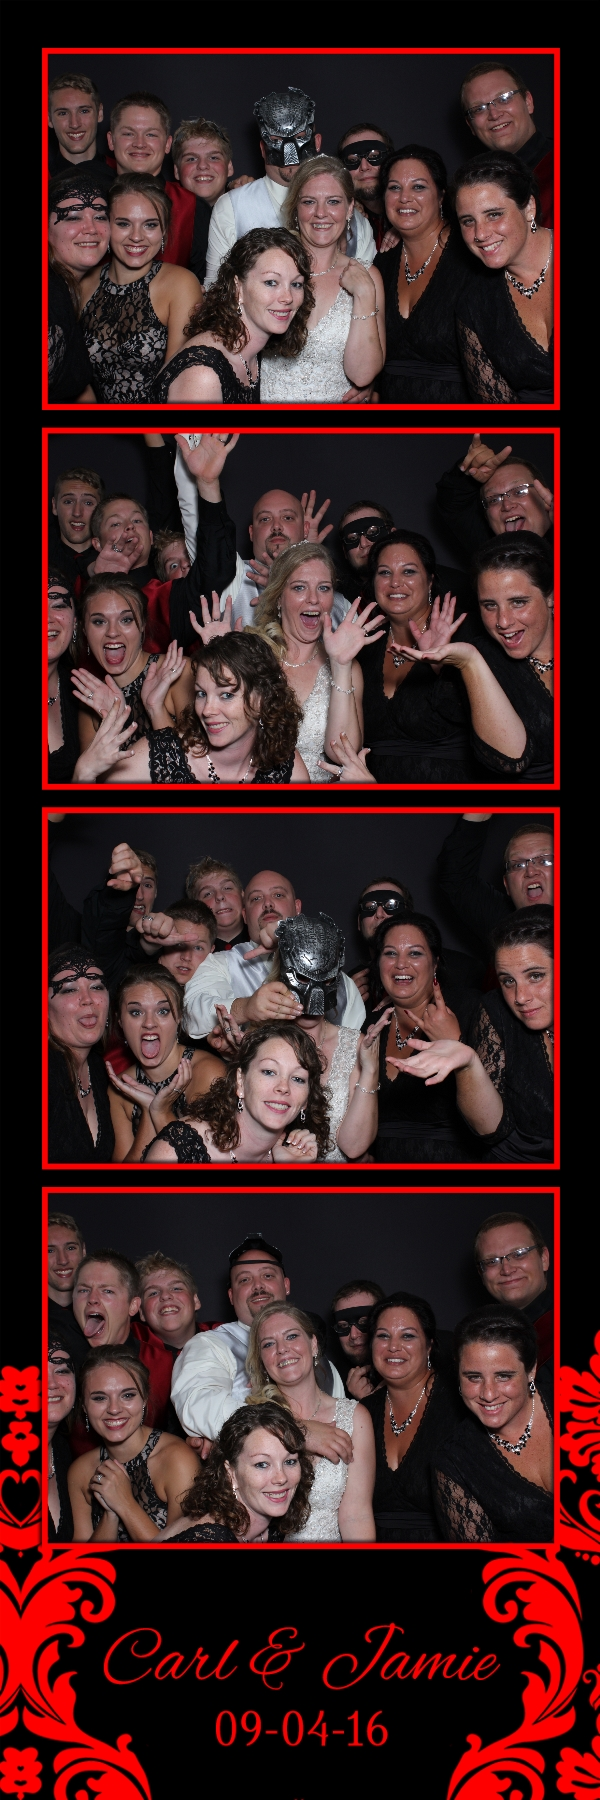 custom photo booth rental in Michigan, rent a photo booth, photo booth for rent, custom photo strip